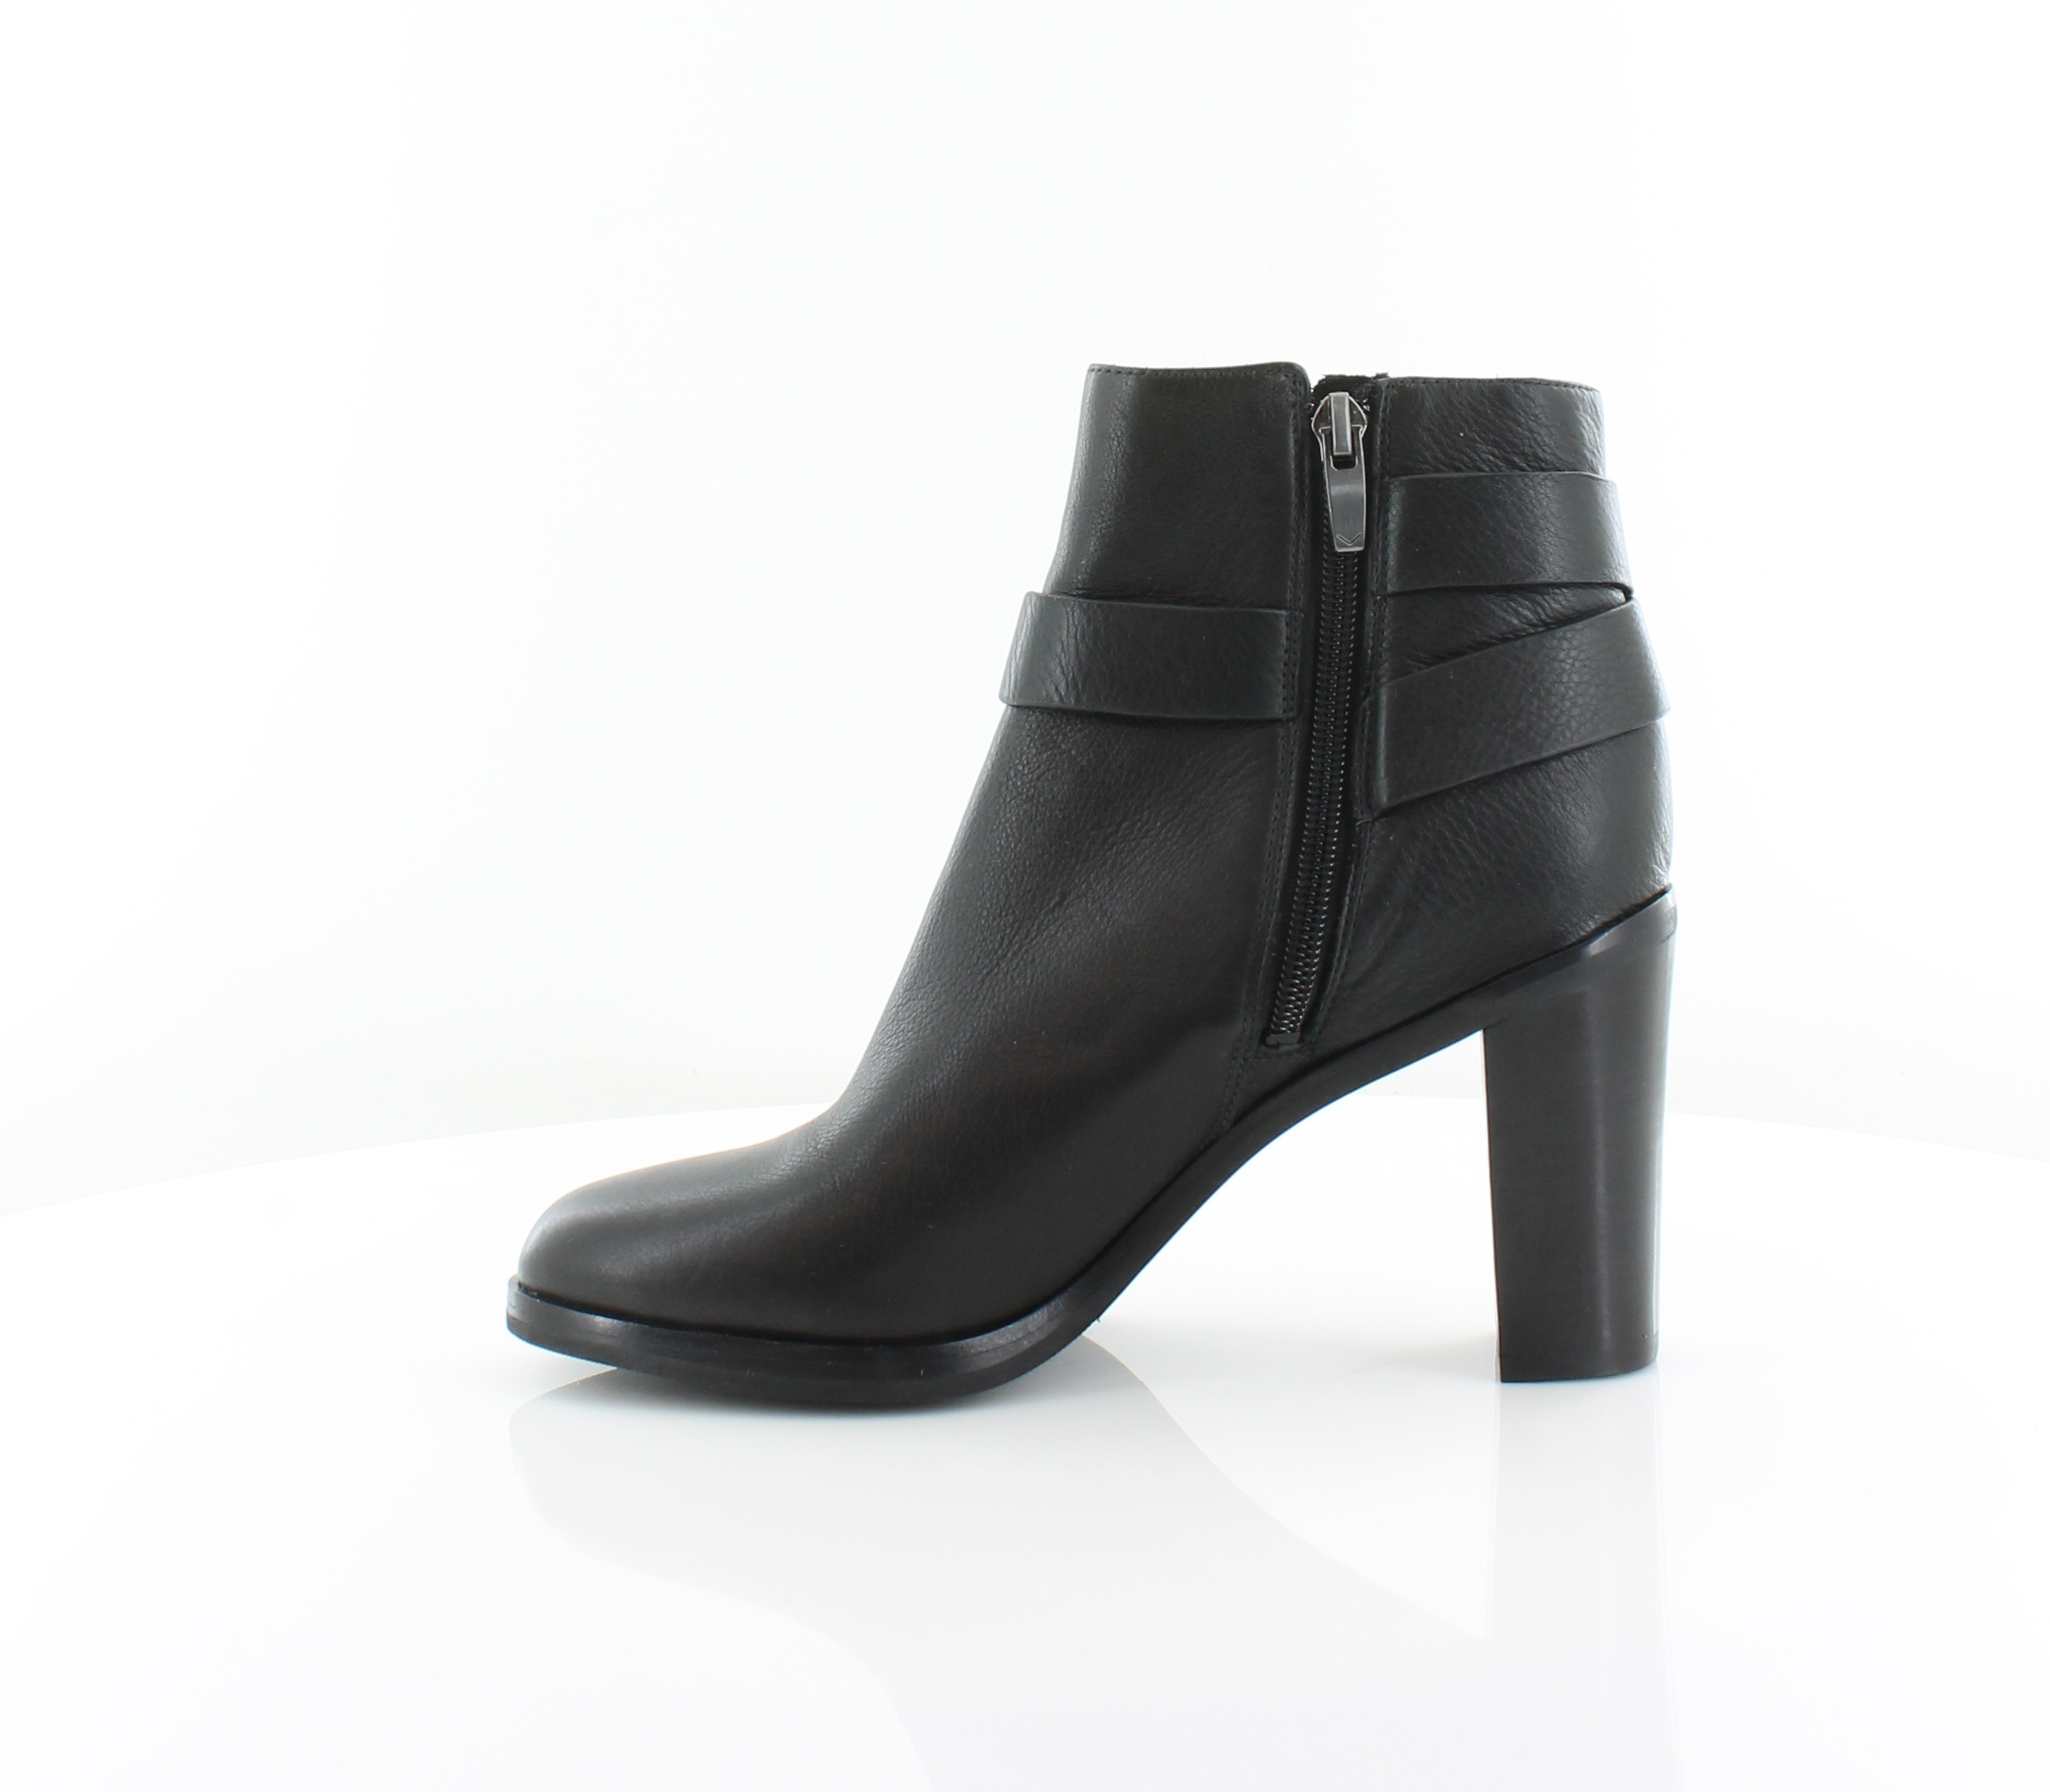 Via Spiga Womens Farrah Economical, stylish, and eye-catching shoes